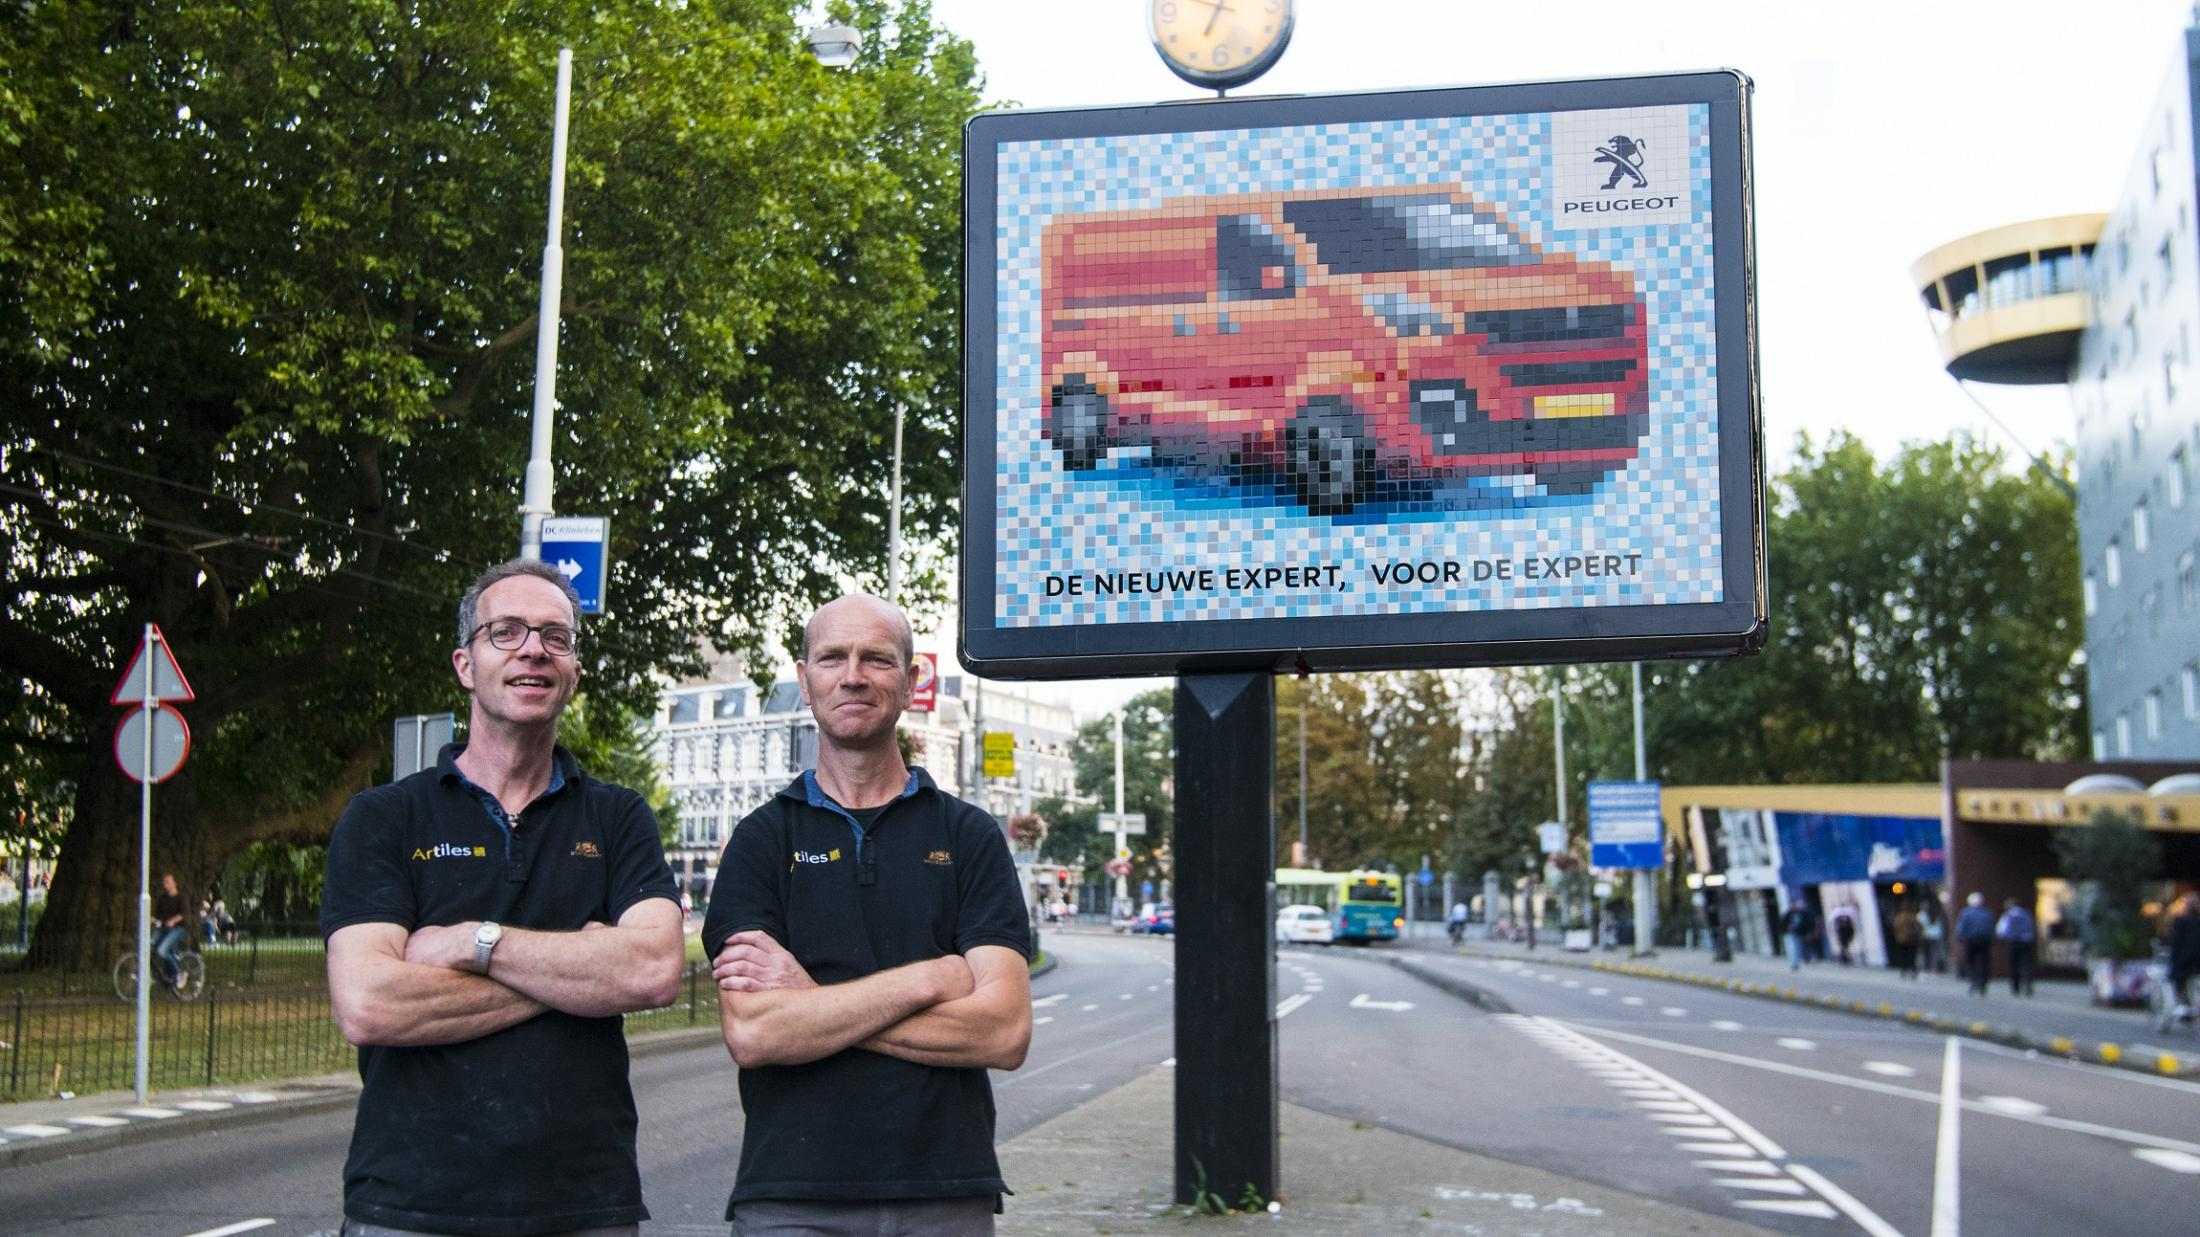 Peugeot Outdoor Ad - Mosaic